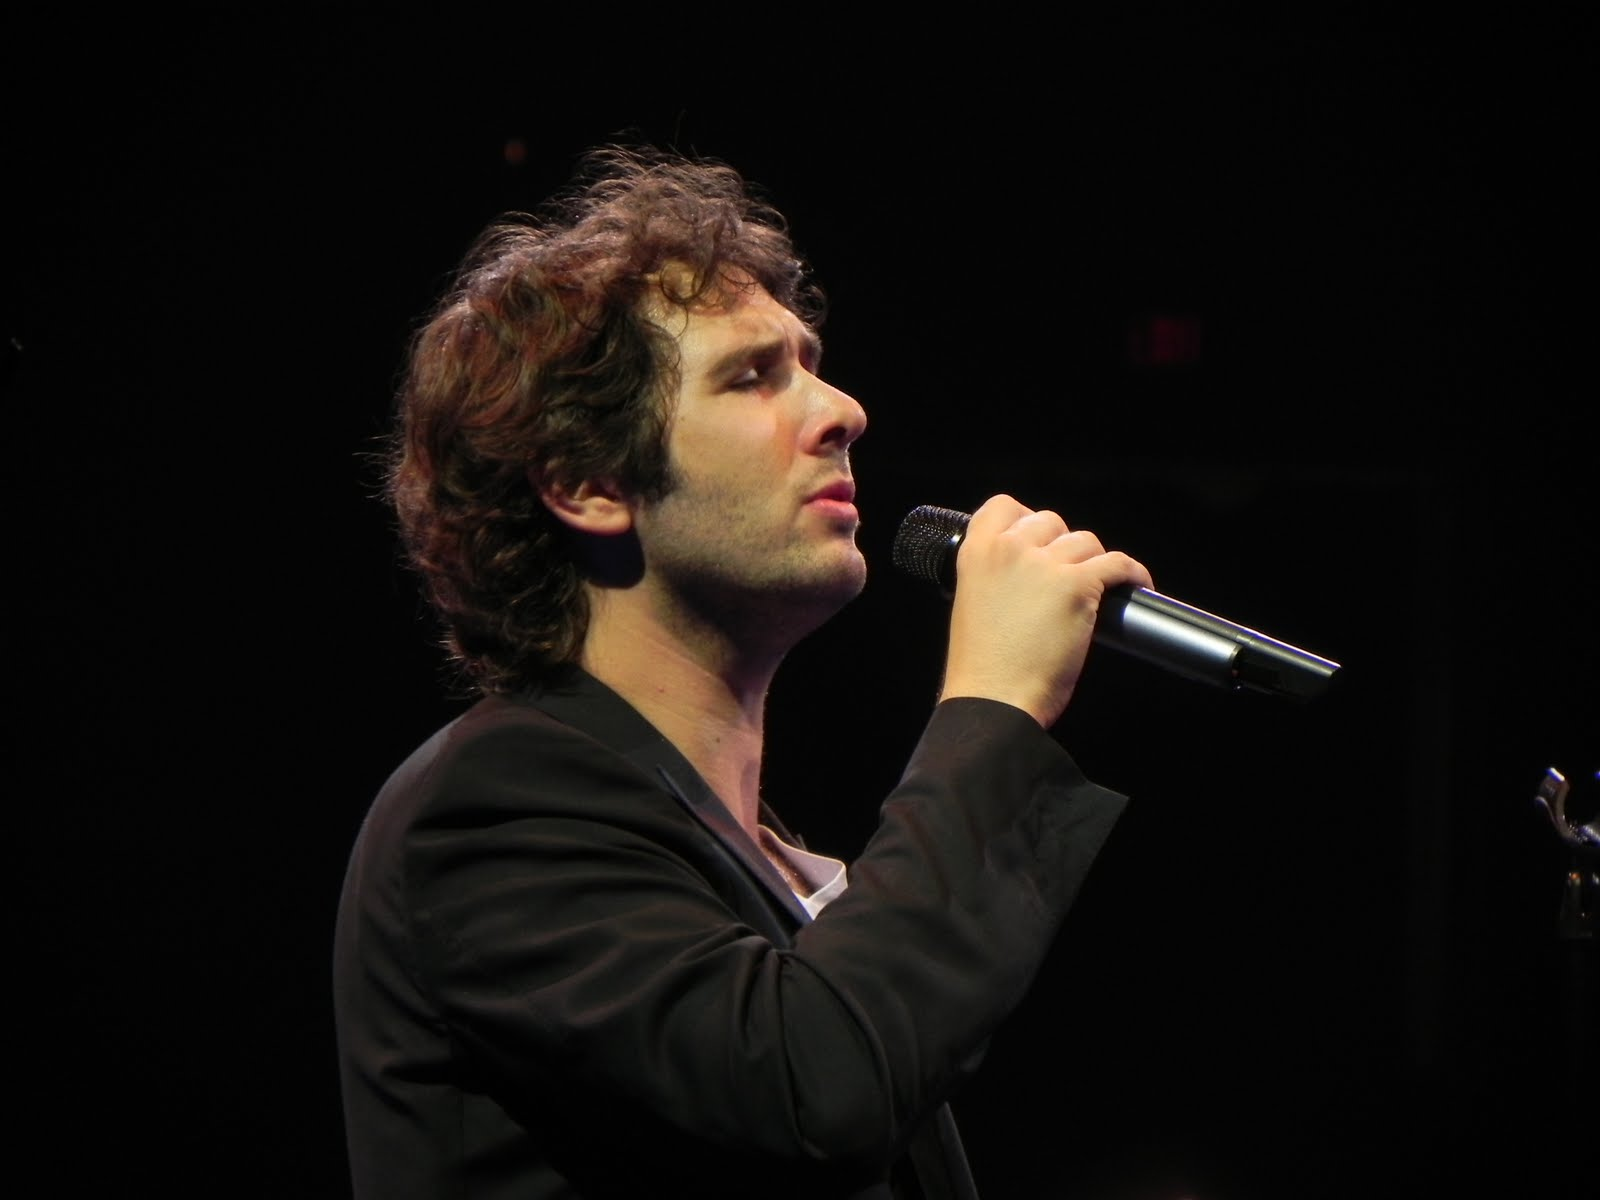 Josh groban pictures Josh Groban - Home Facebook